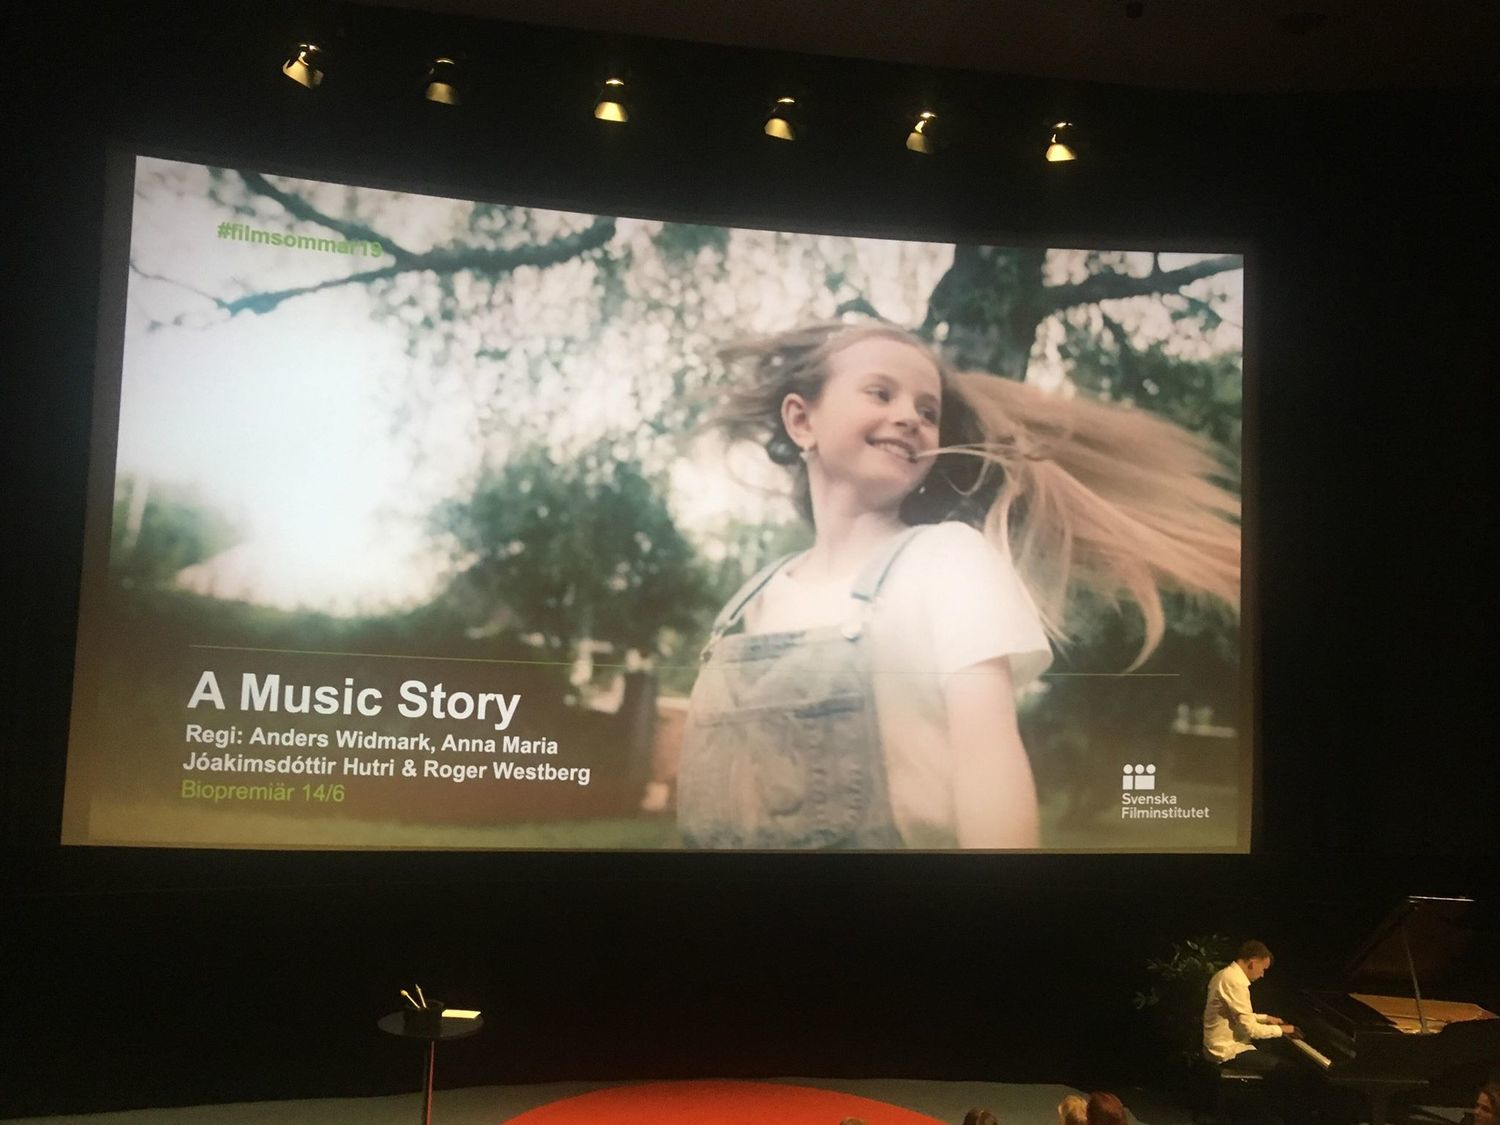 BWW Review: A MUSIC STORY at Cinemas